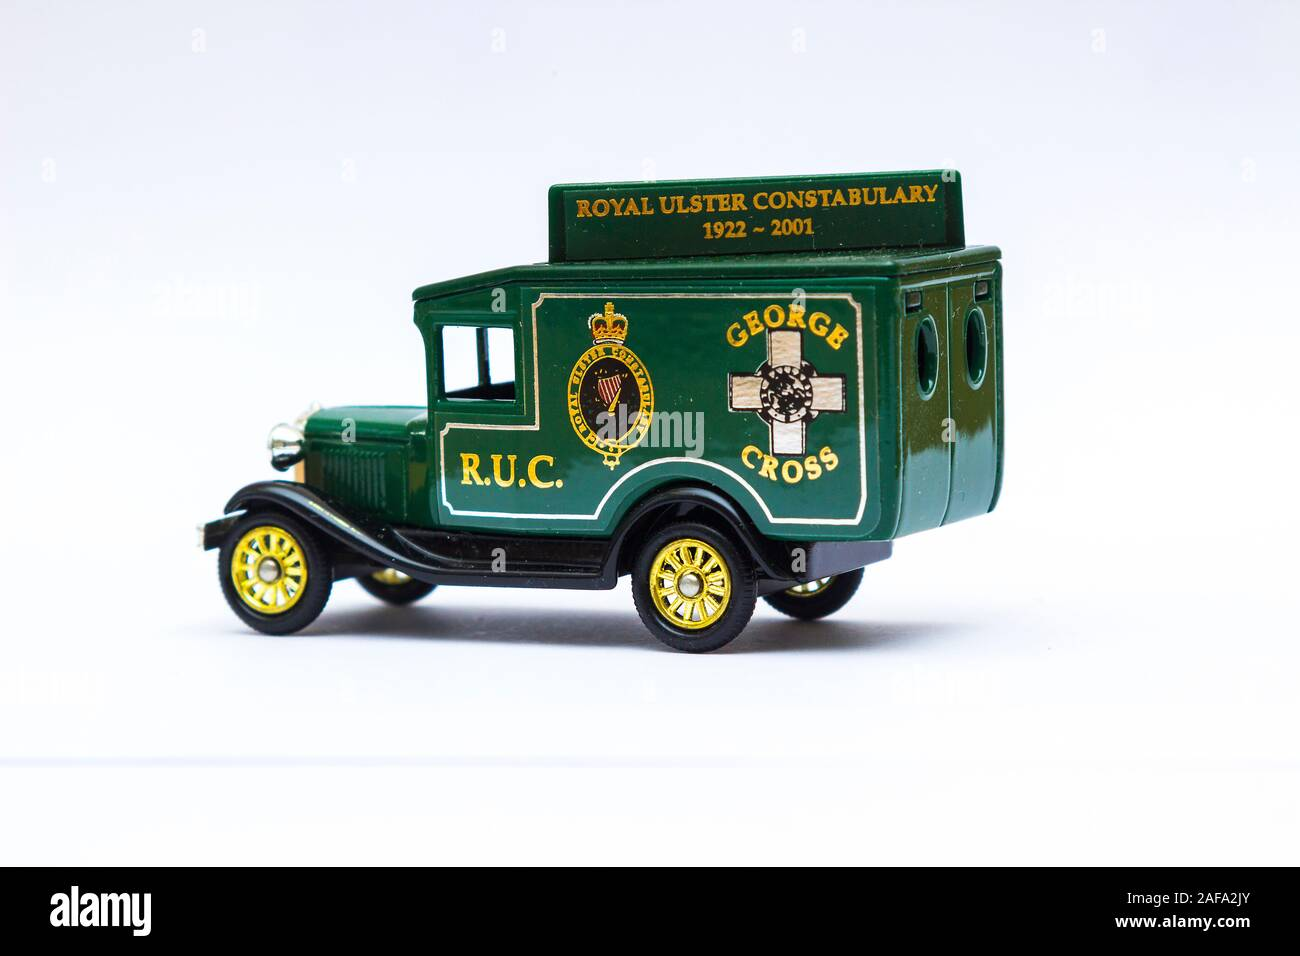 29 November 2019 Model T Ford die cast Scale Model Van collectible in the livery of now non existent Royal Ulster Constabulary celebrating their Georg Stock Photo